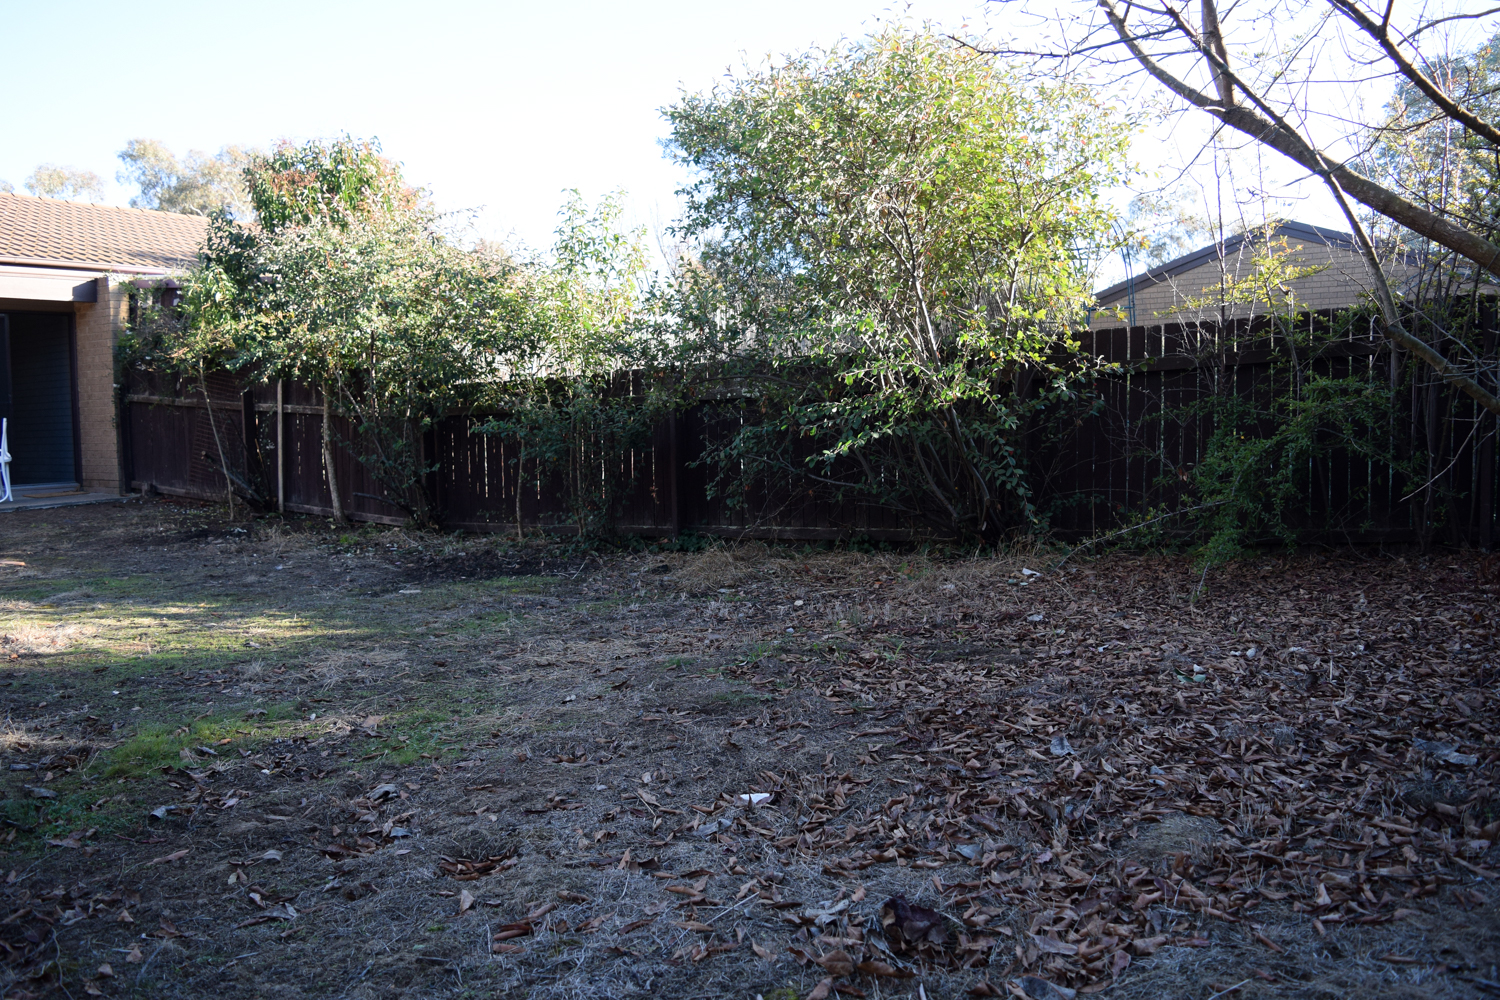 Bonnie backyard before